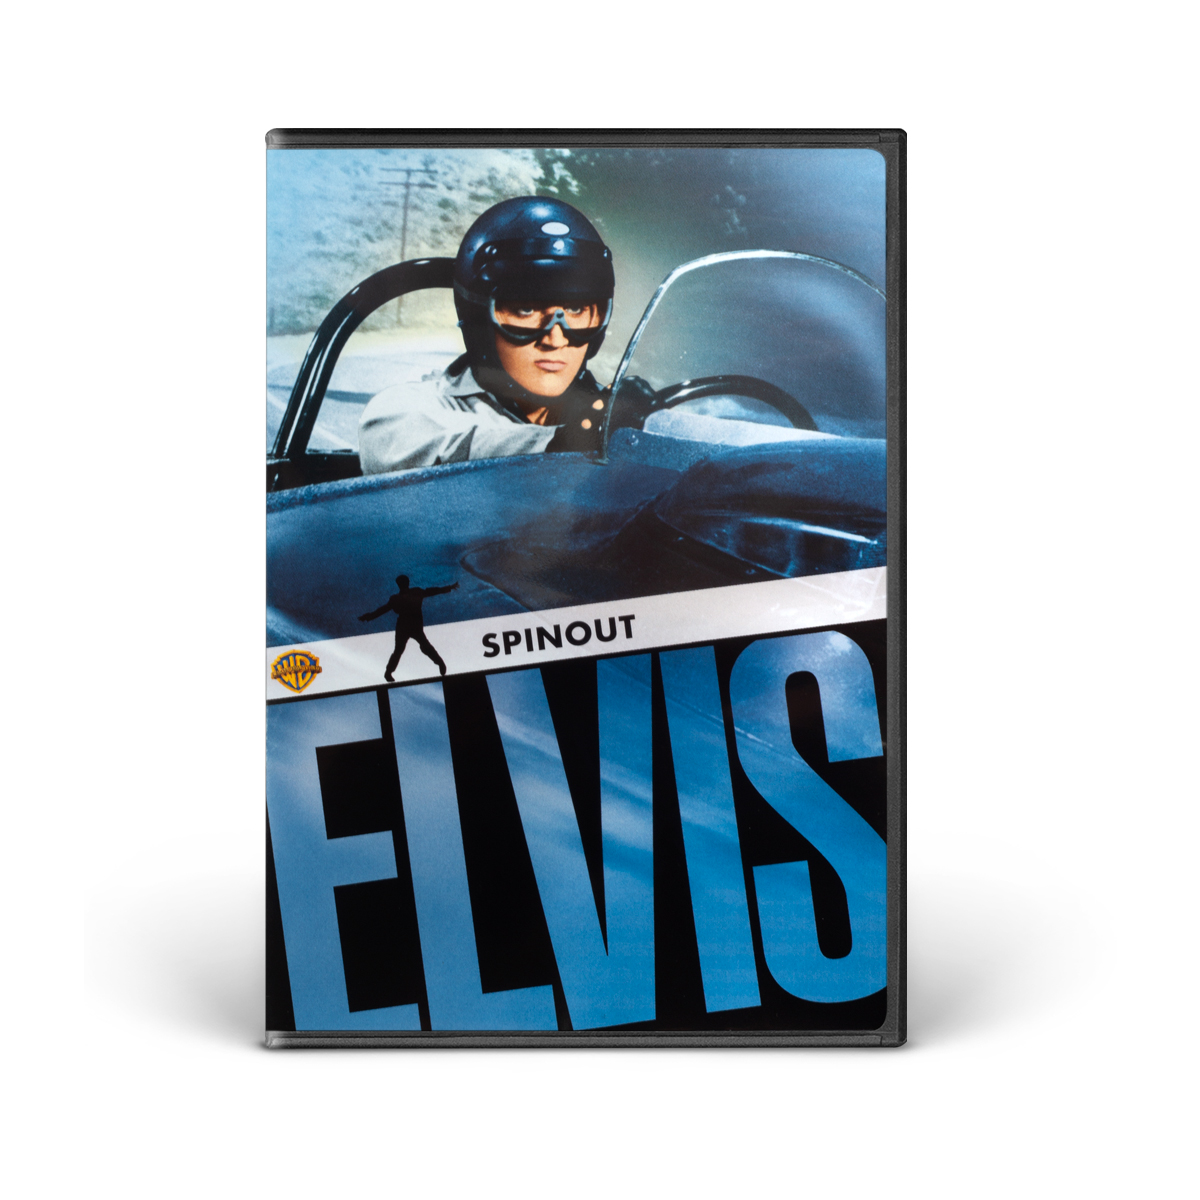 Elvis Spinout (Widescreen)